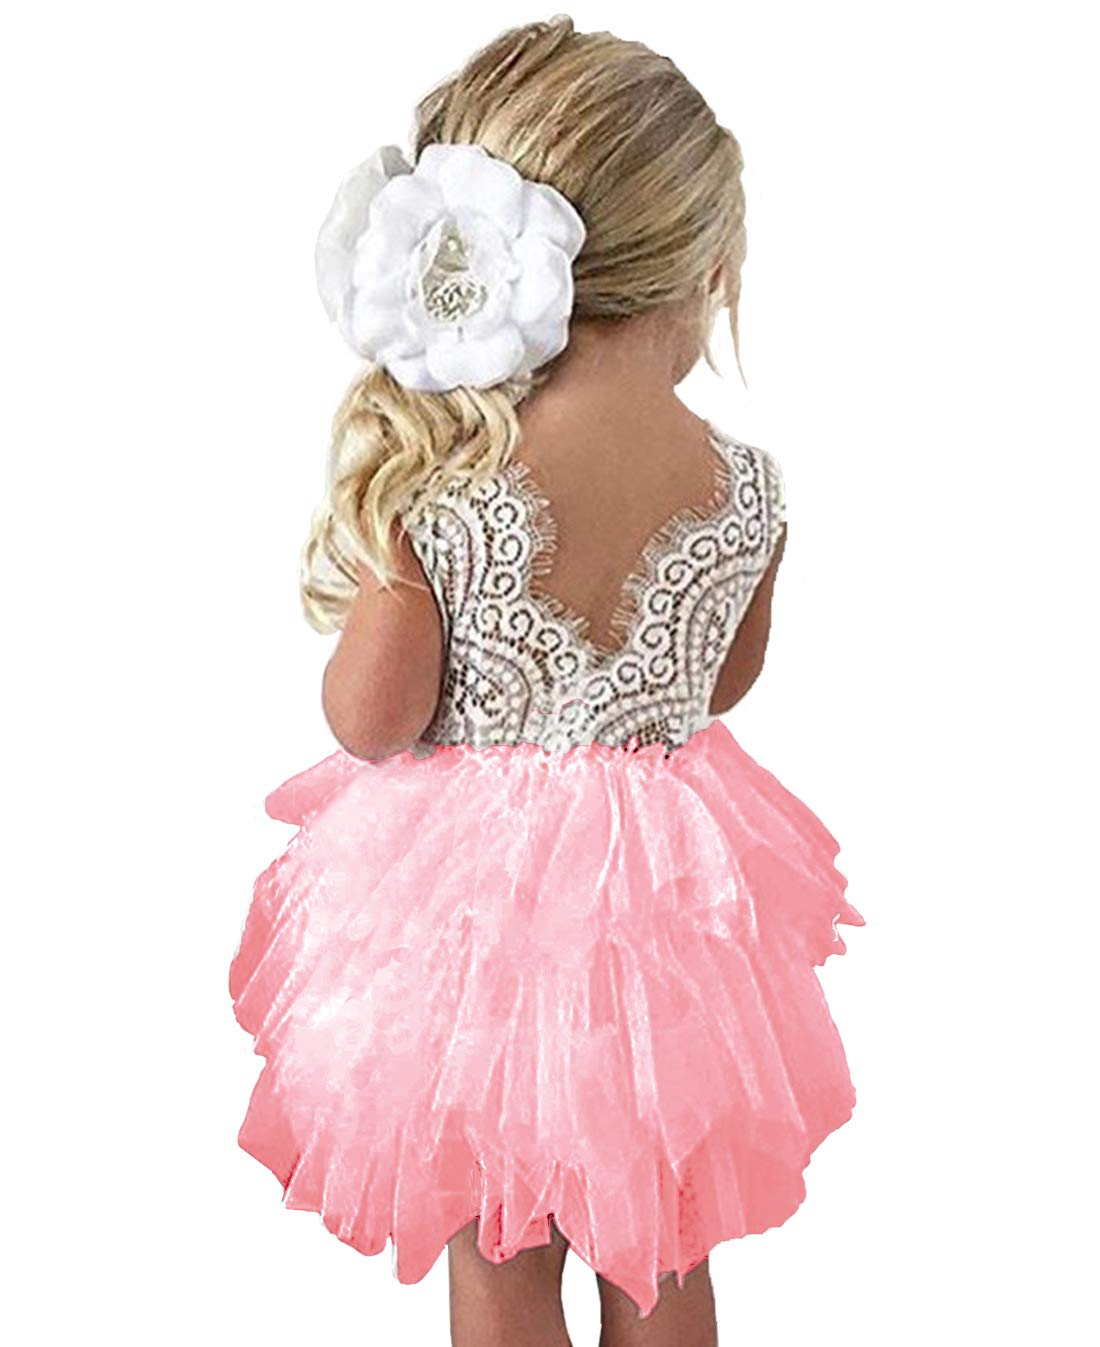 lymanchi Toddler Baby Lace Back Tiered Tutu Tulle Backless Flower Girls Dress